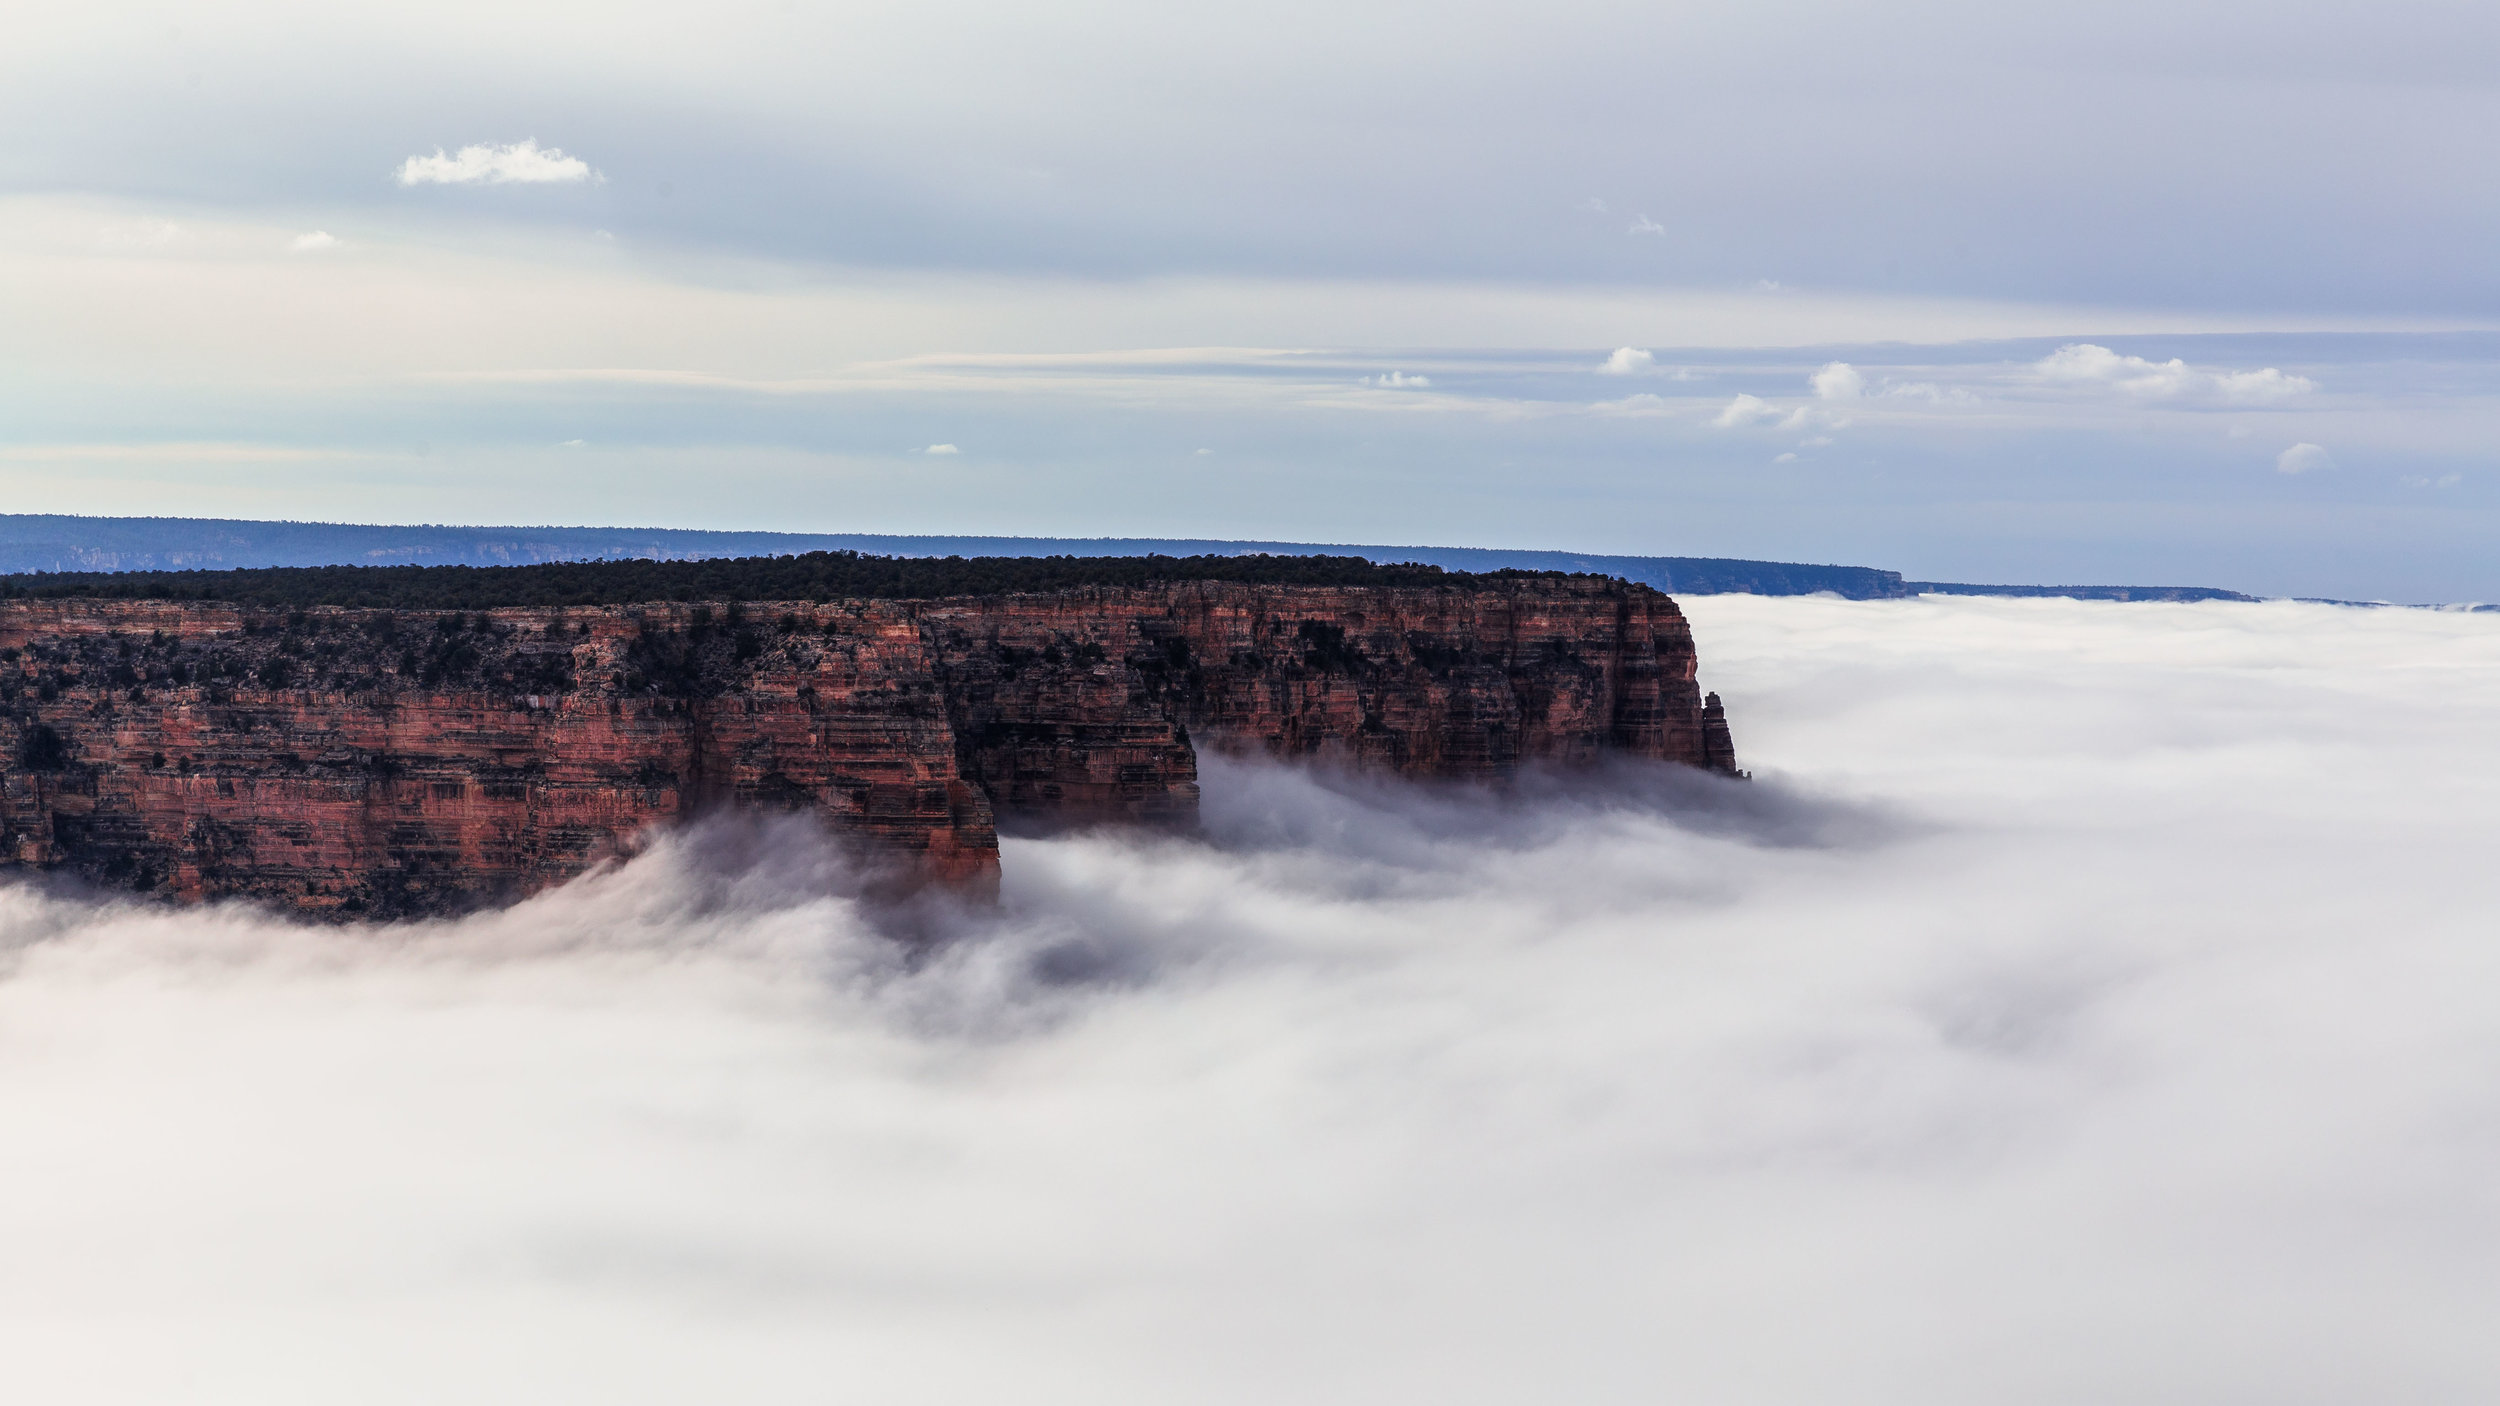 This isn't an ocean lapping at the shore — it's clouds inside the Grand Canyon